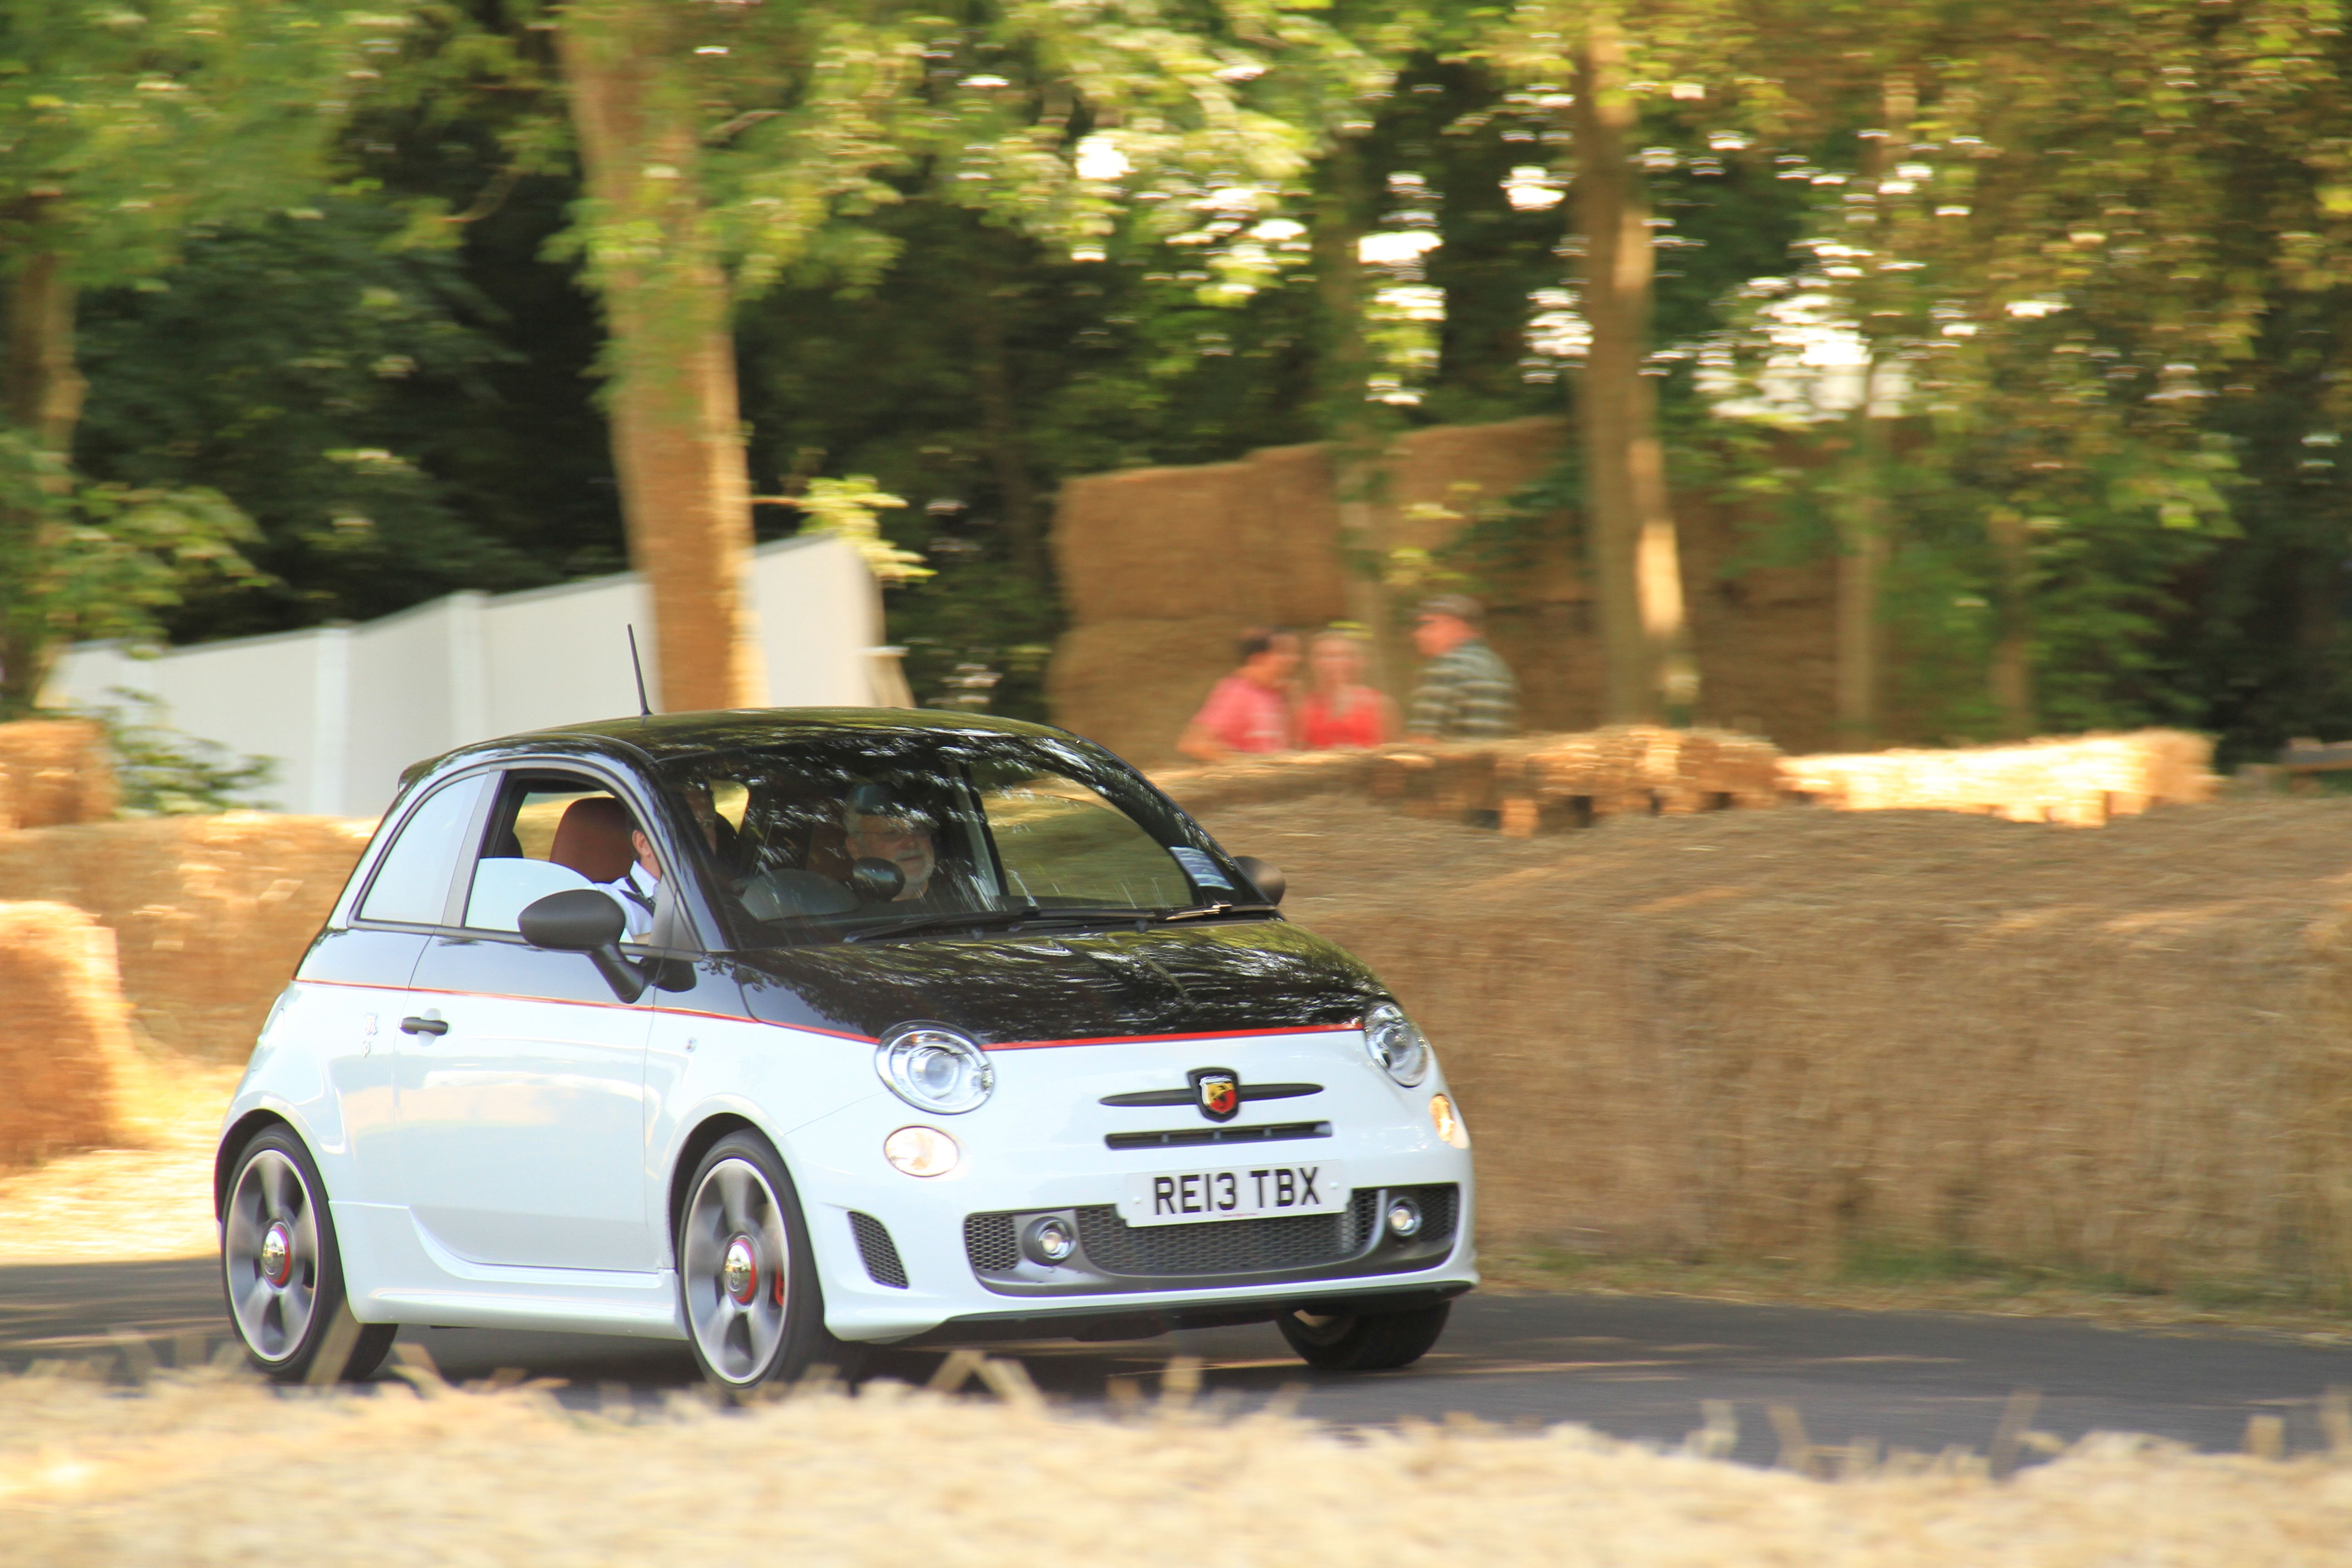 All the Abarth cars at Goodwood were supplied by Thames Slough ...